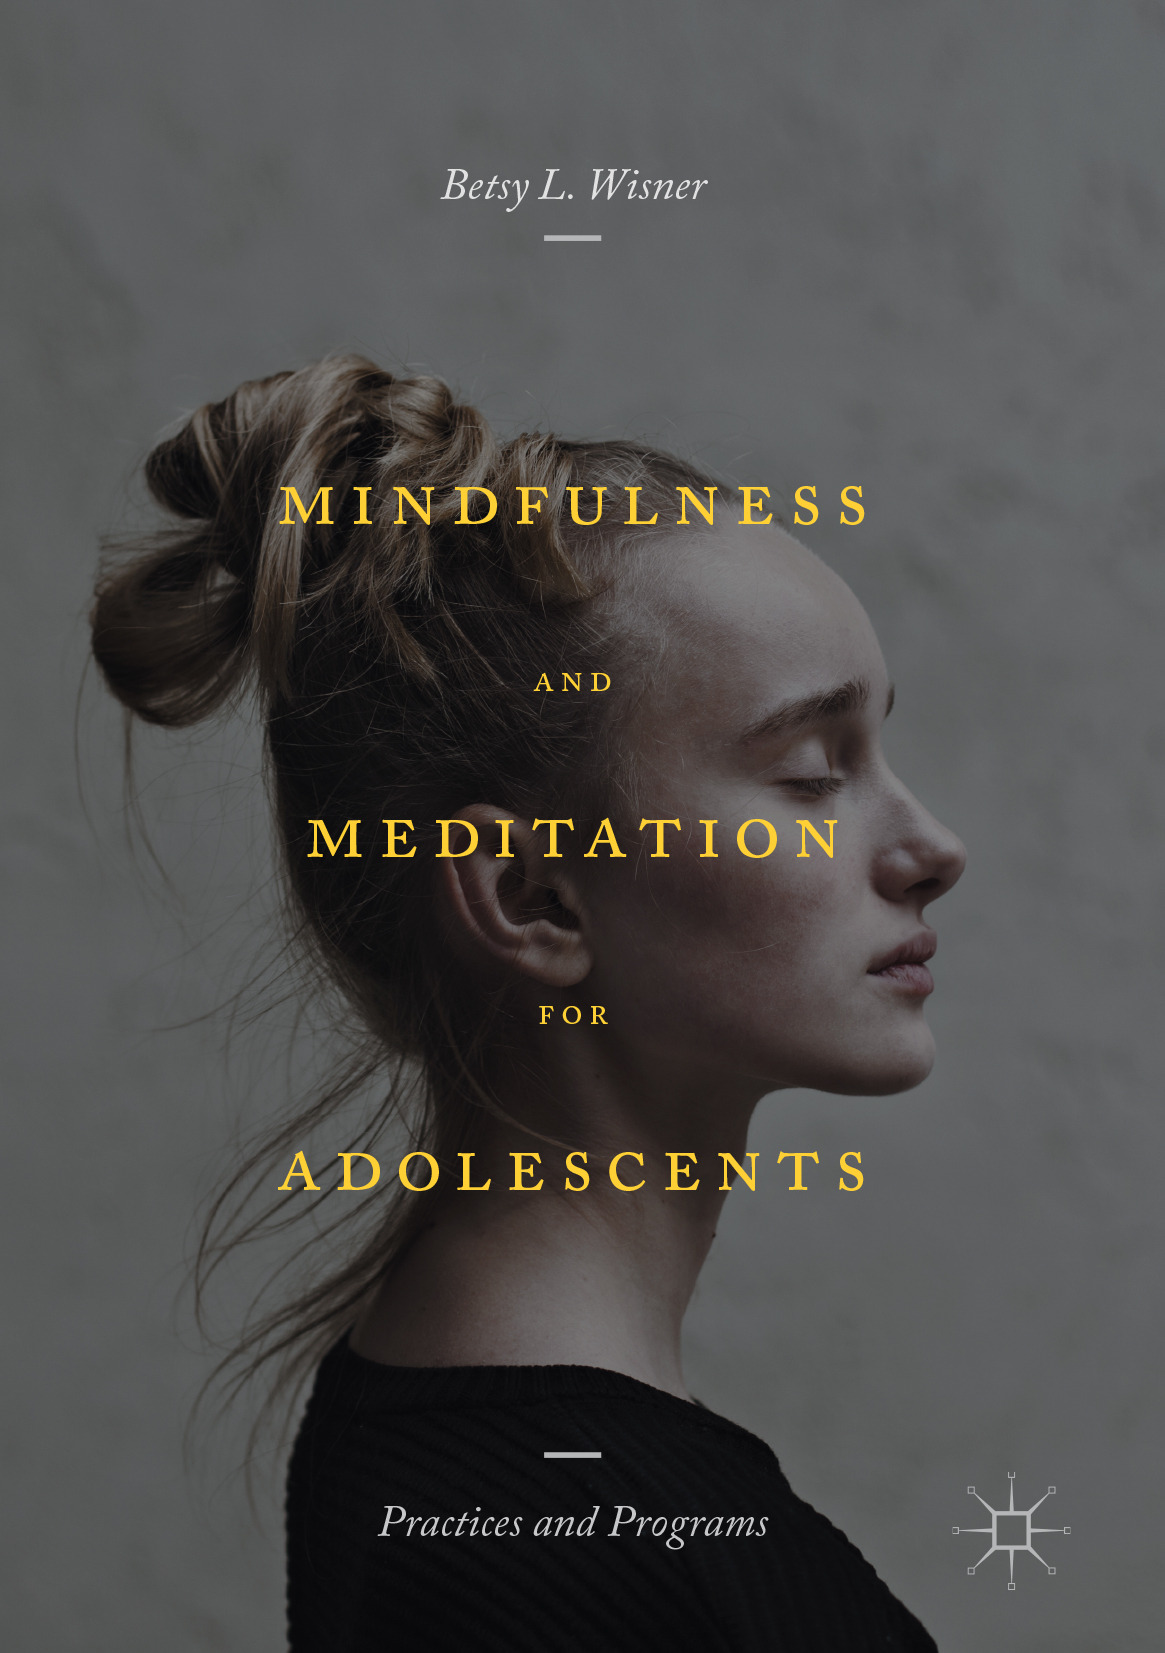 Wisner, Betsy L. - Mindfulness and Meditation for Adolescents, ebook